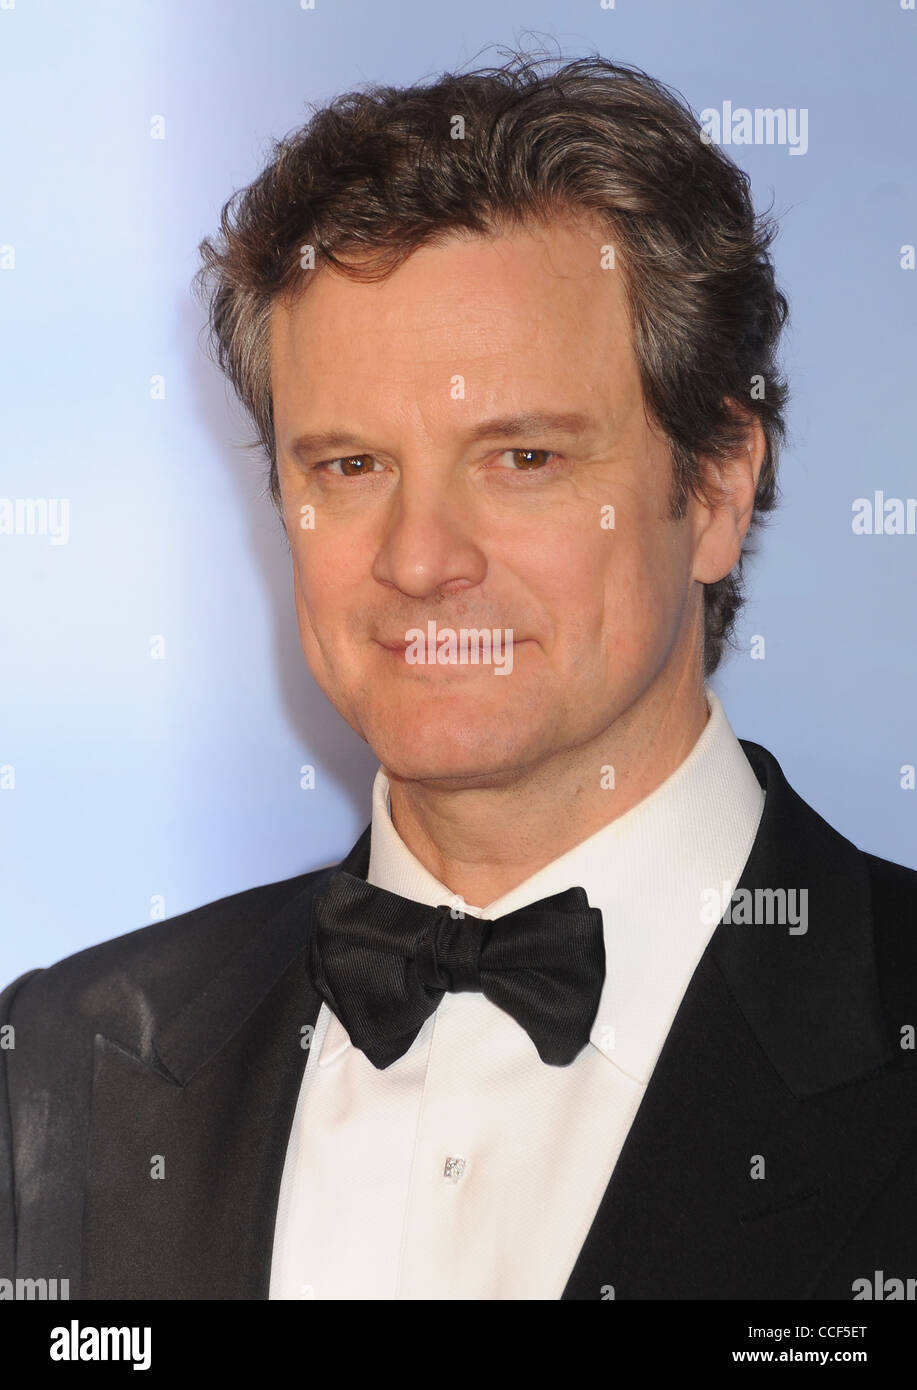 COLIN FIRTH UK film actor in January 2012. Photo Jeffrey Mayer - Stock Image